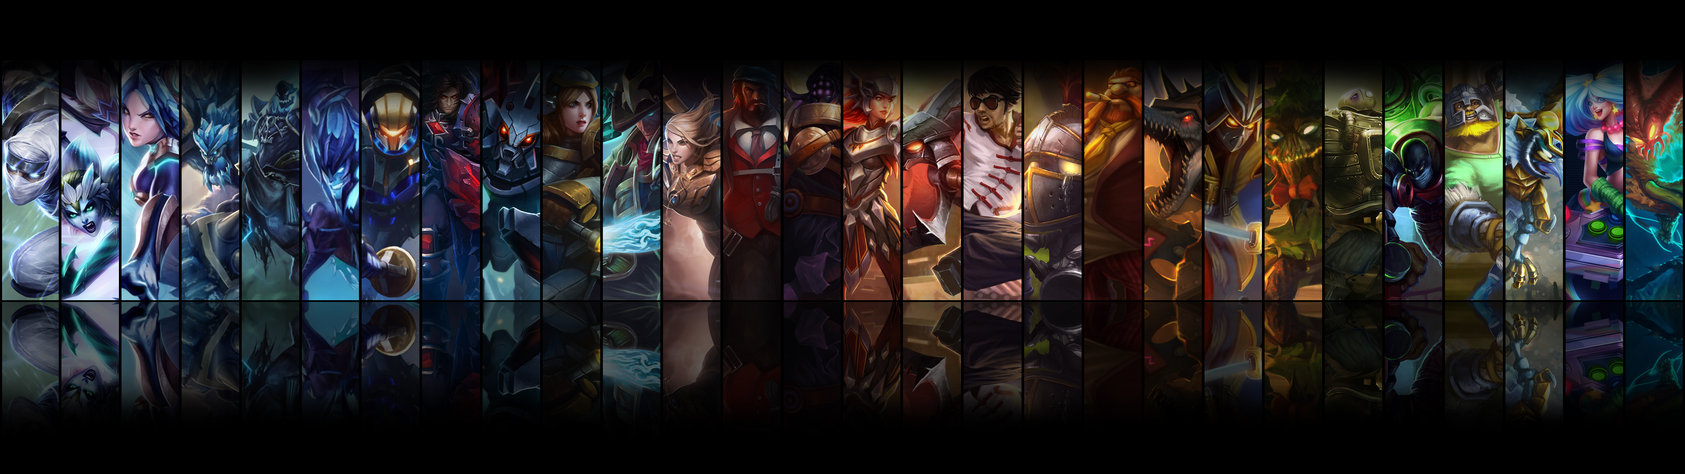 League of Legends Dual Screen Wallpaper by beNN94 1685x474